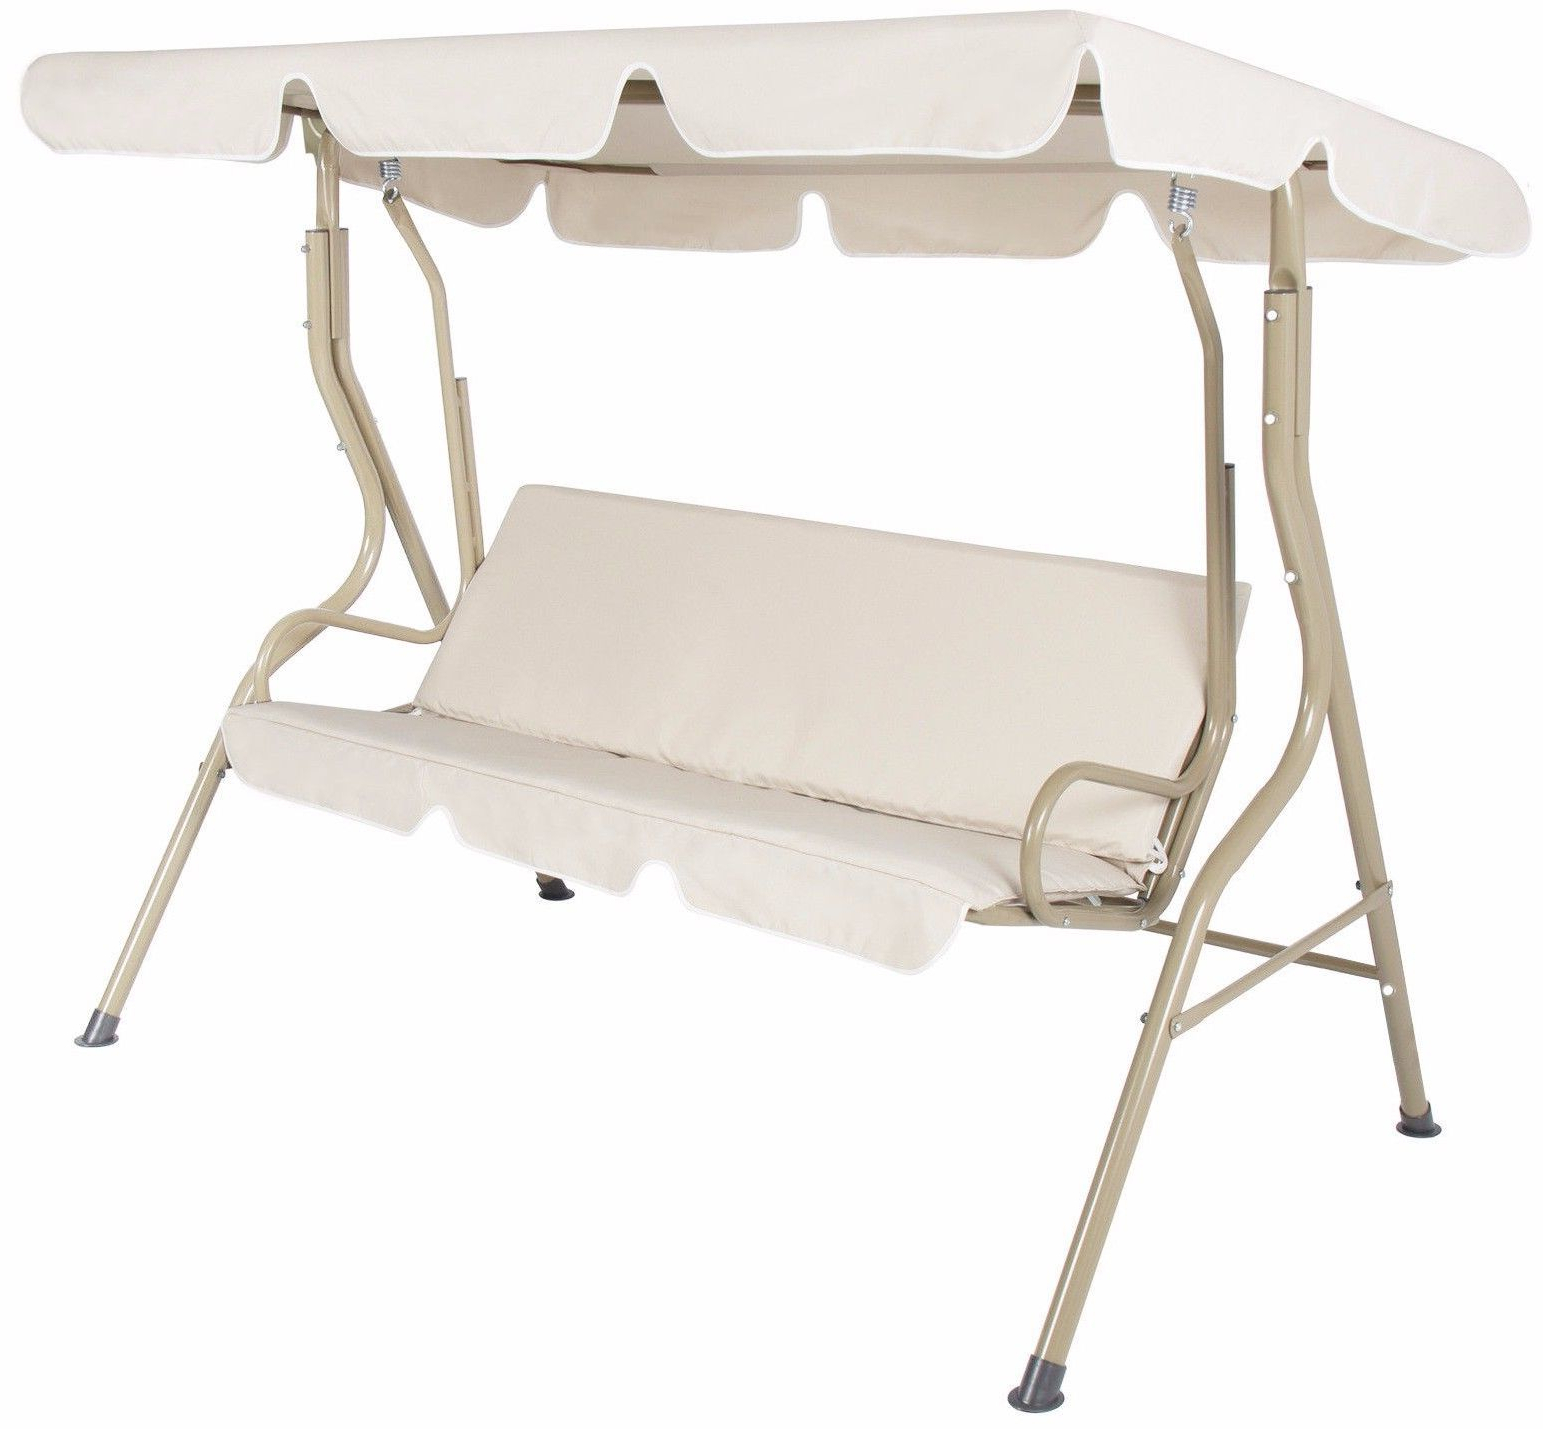 Outdoor 2 Person Canopy Swing Glider Hammock Patio Furniture Pertaining To Most Recently Released Patio Glider Hammock Porch Swings (Gallery 3 of 25)